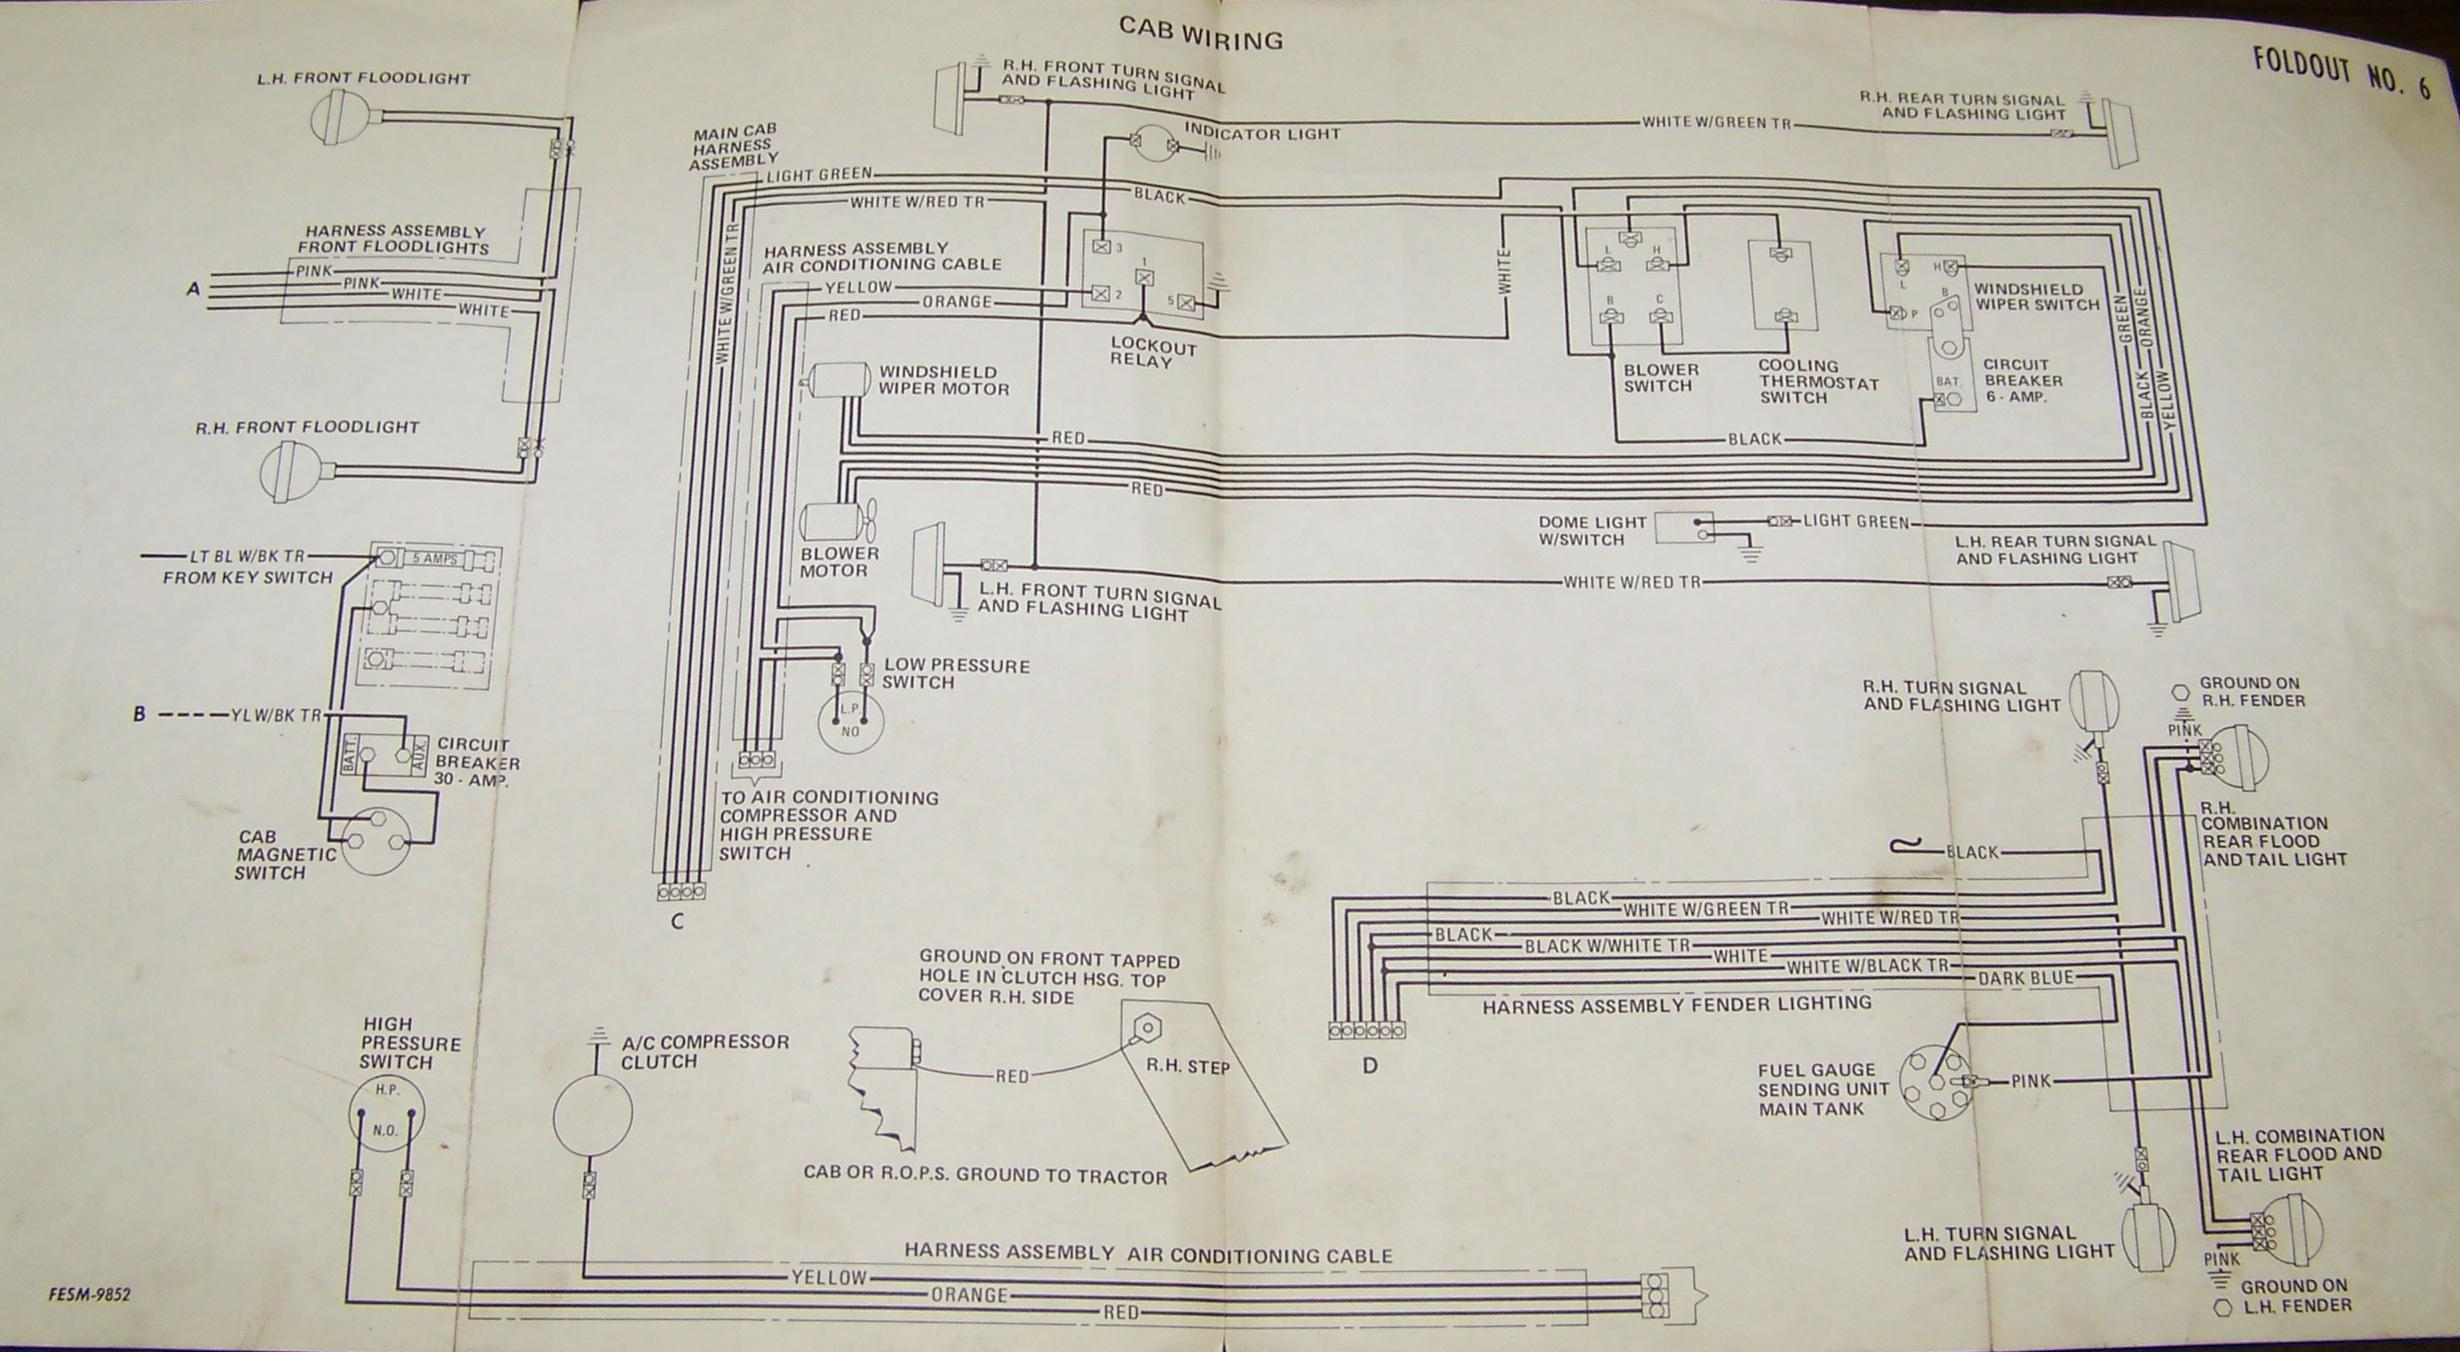 86series6 radio wiring diagram ih 1586 ih 1066 wiring diagram \u2022 wiring 1967 Chevelle Wiring Diagram at soozxer.org